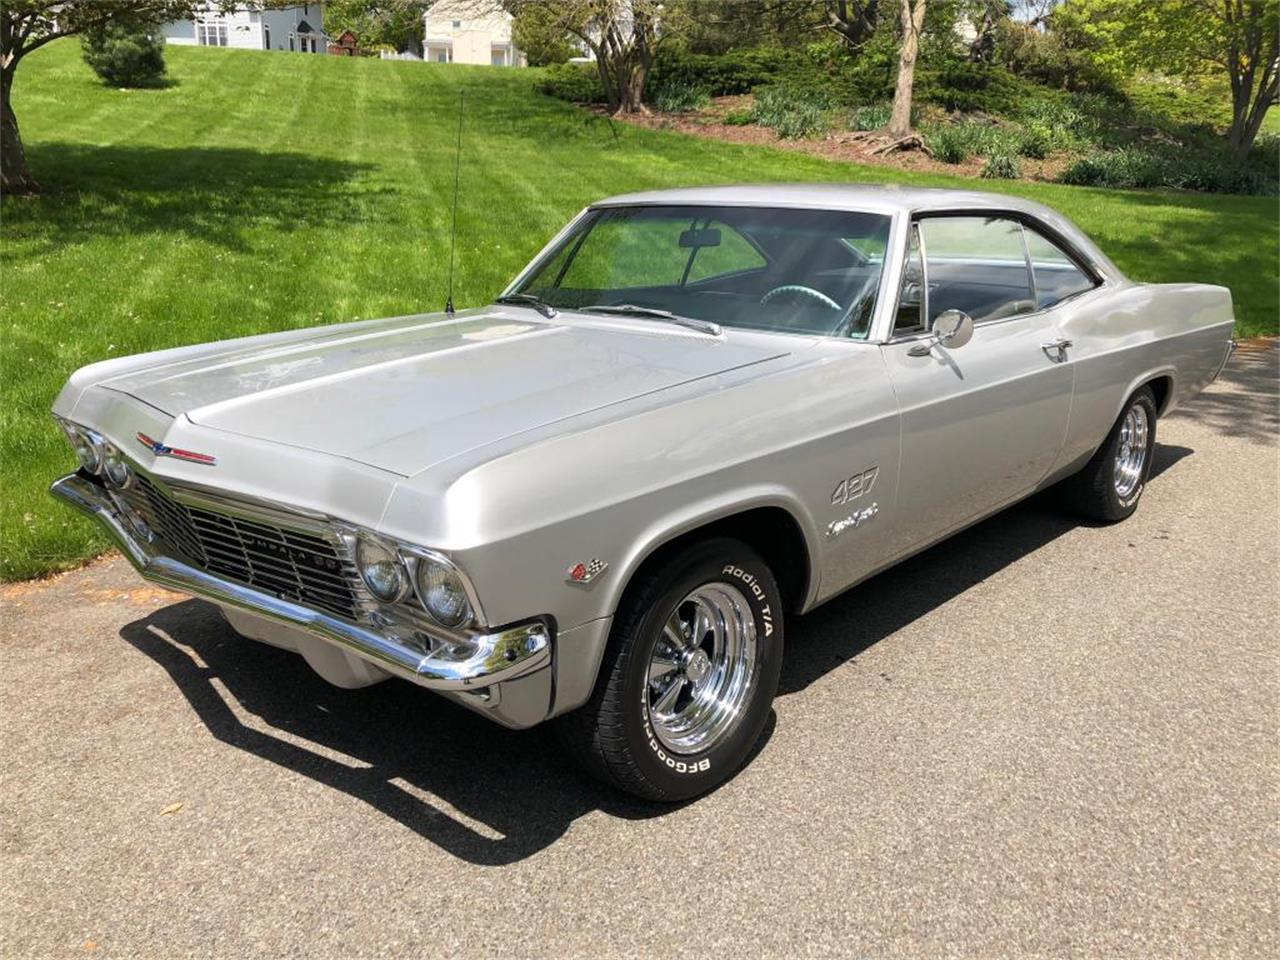 Large Picture of Classic '65 Chevrolet Impala located in Milford City Connecticut - $34,000.00 Offered by Napoli Classics - Q47Y